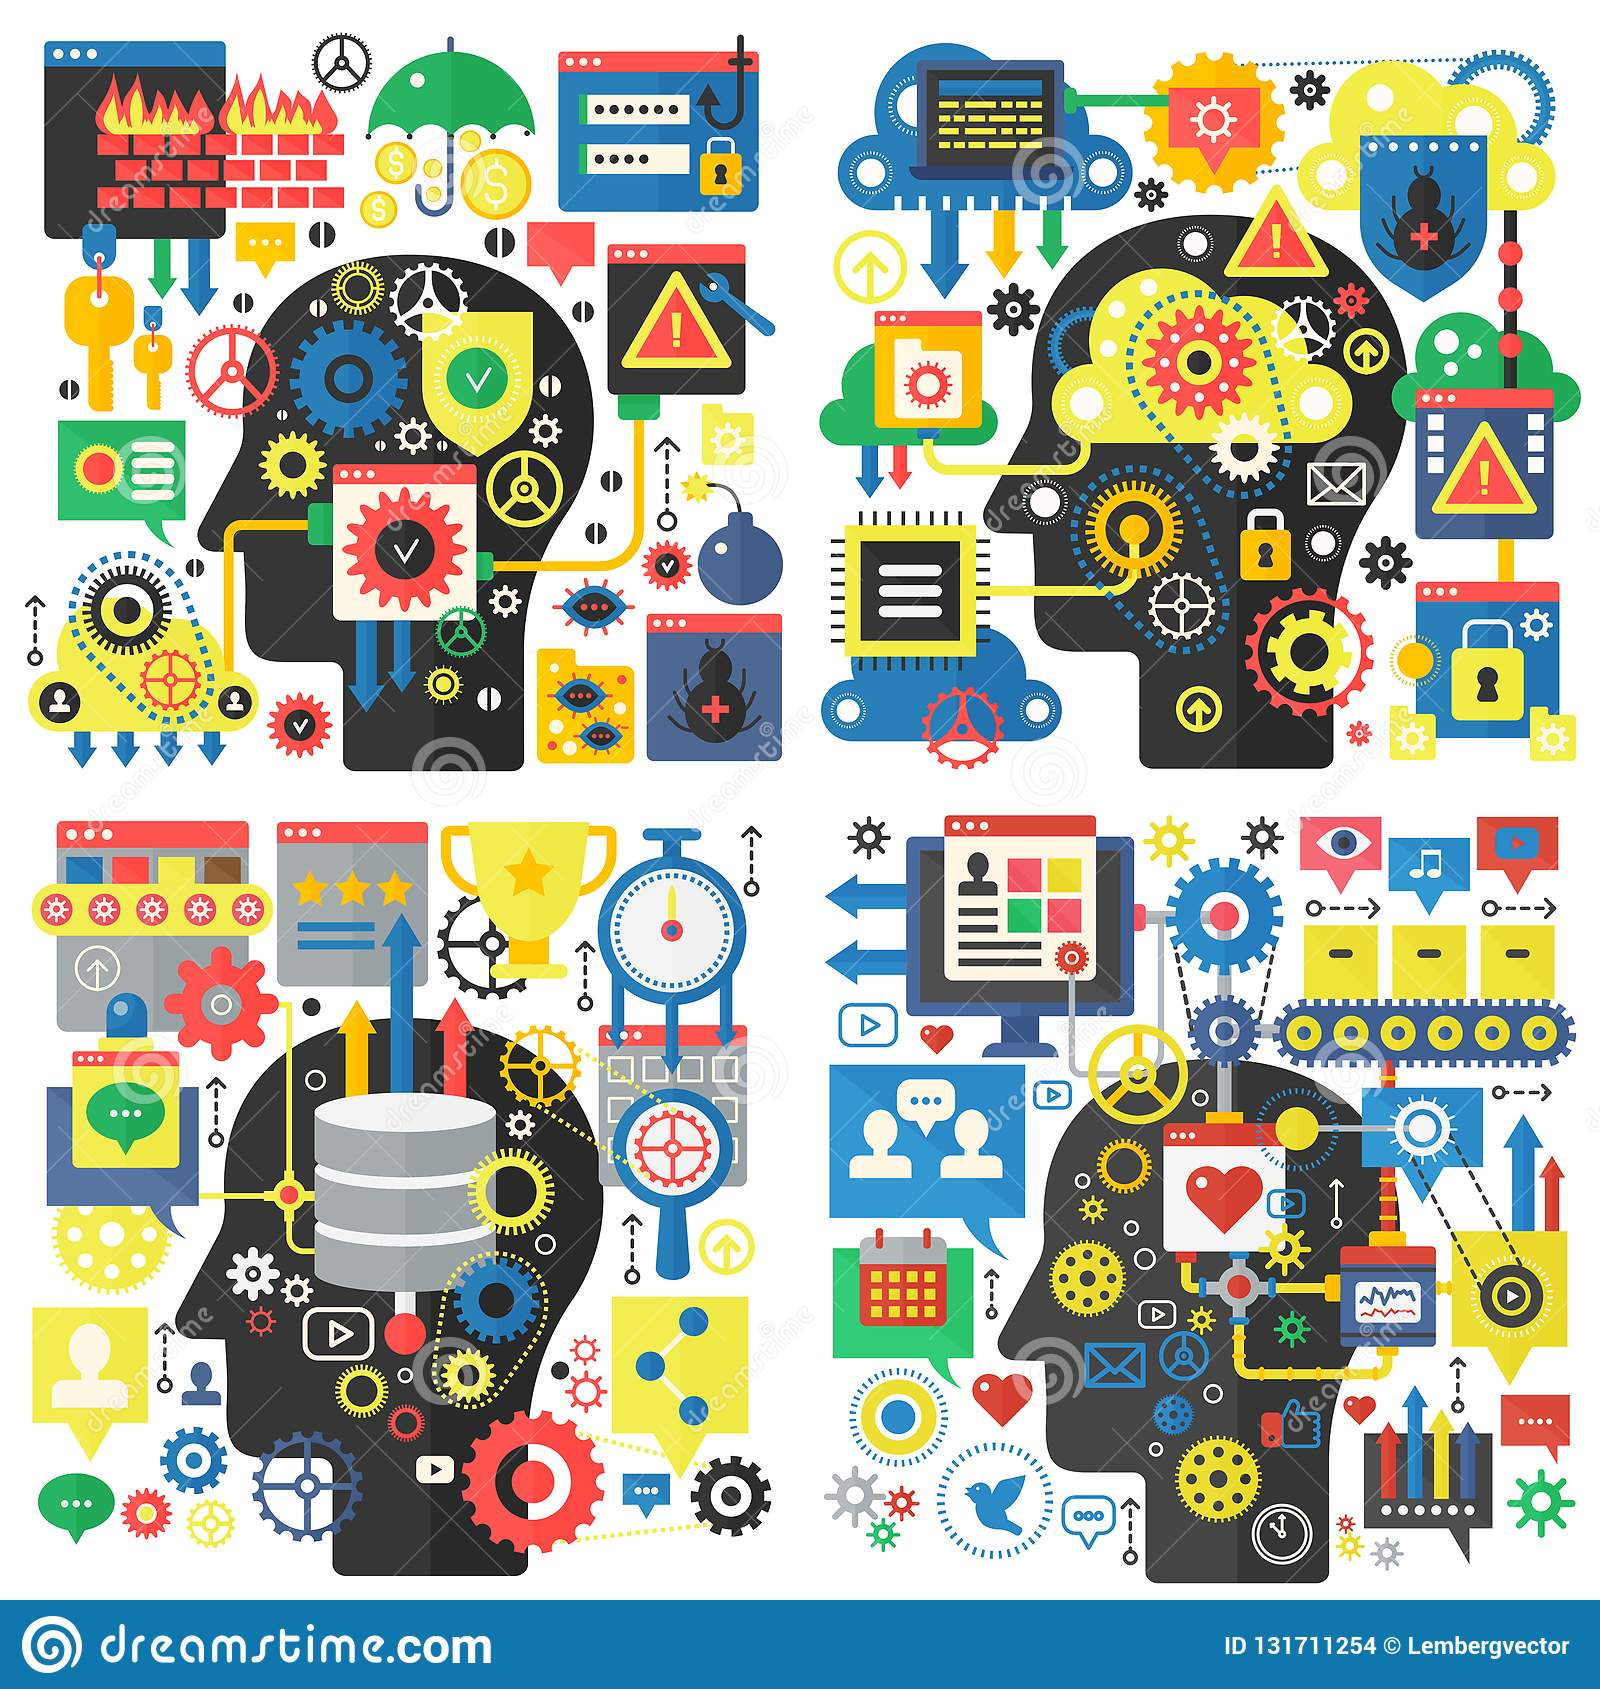 Infographic flat design head basic vector concept of creativity and research, social media, global network technology